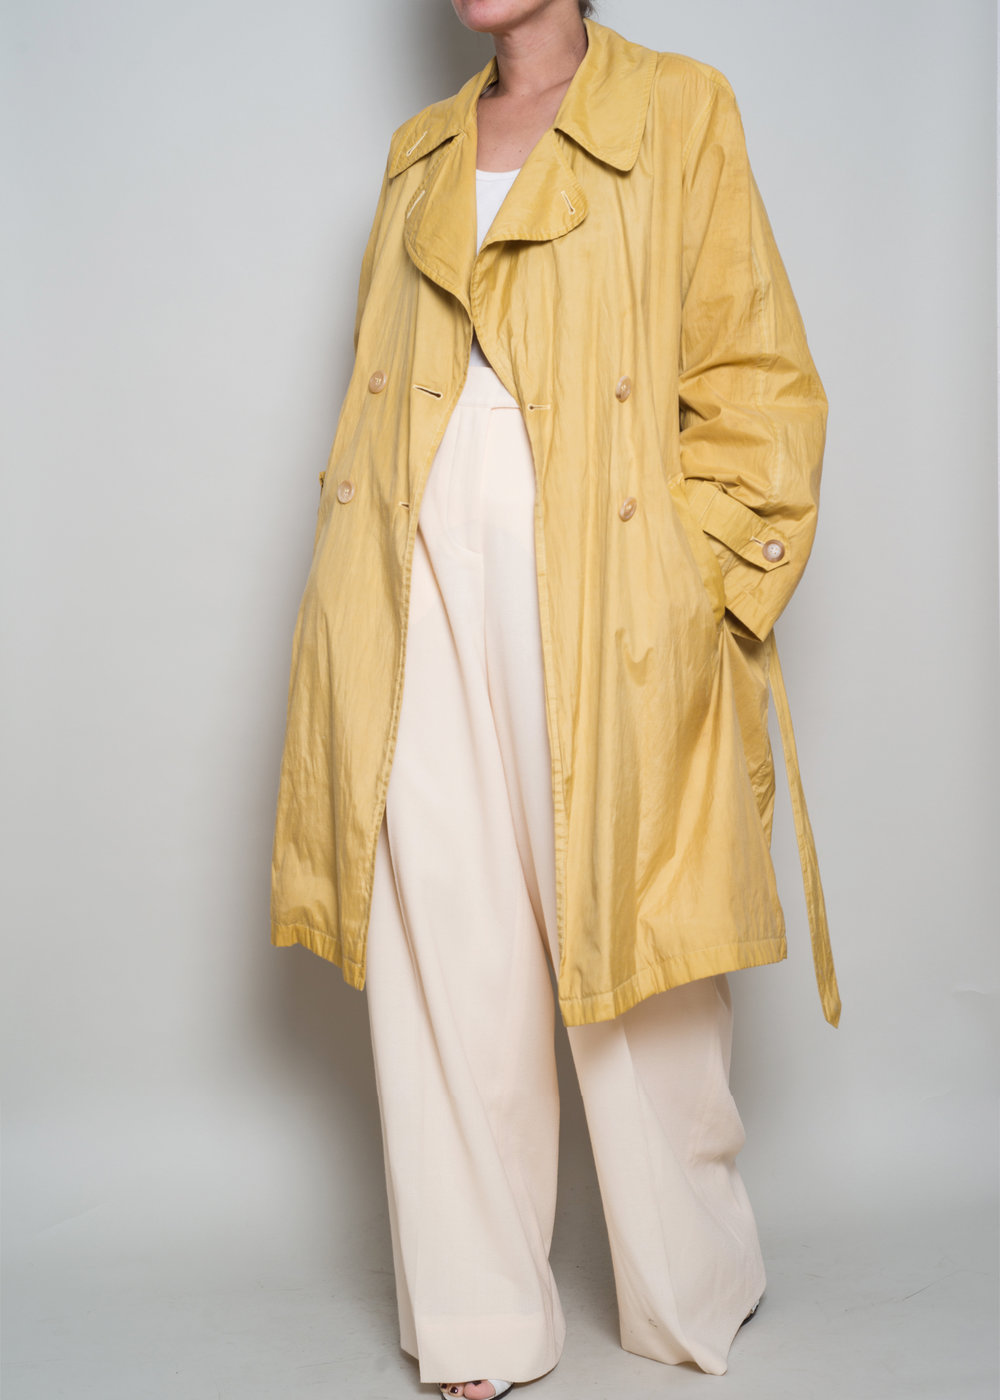 1990s Yellow Spring trench from A PART OF THE REST